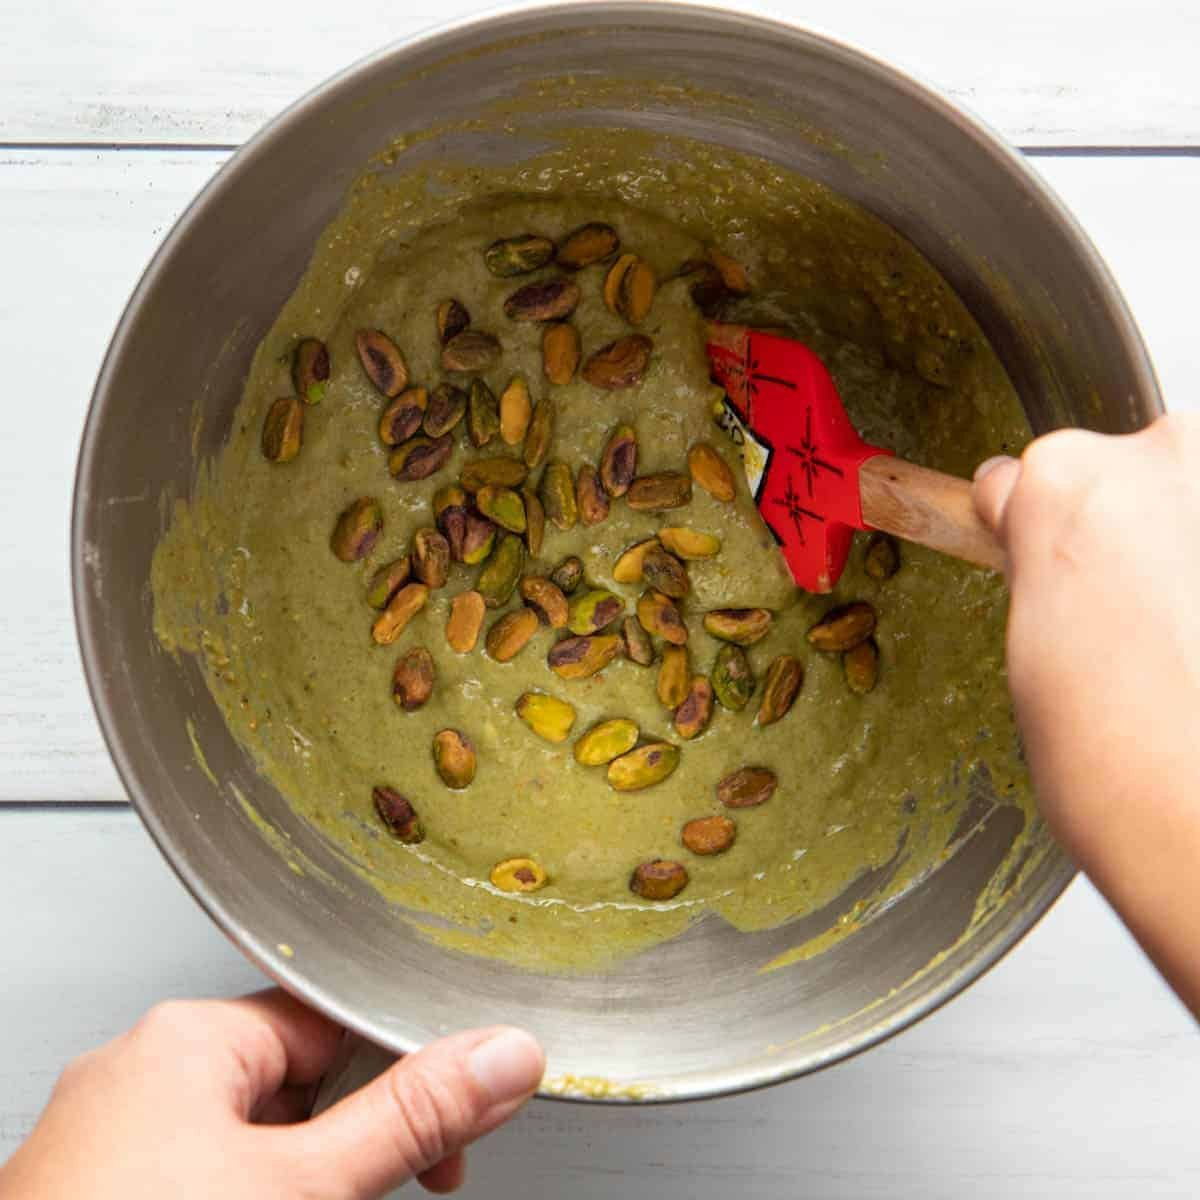 Pistachio muffin batter should be fluid and not overmixed